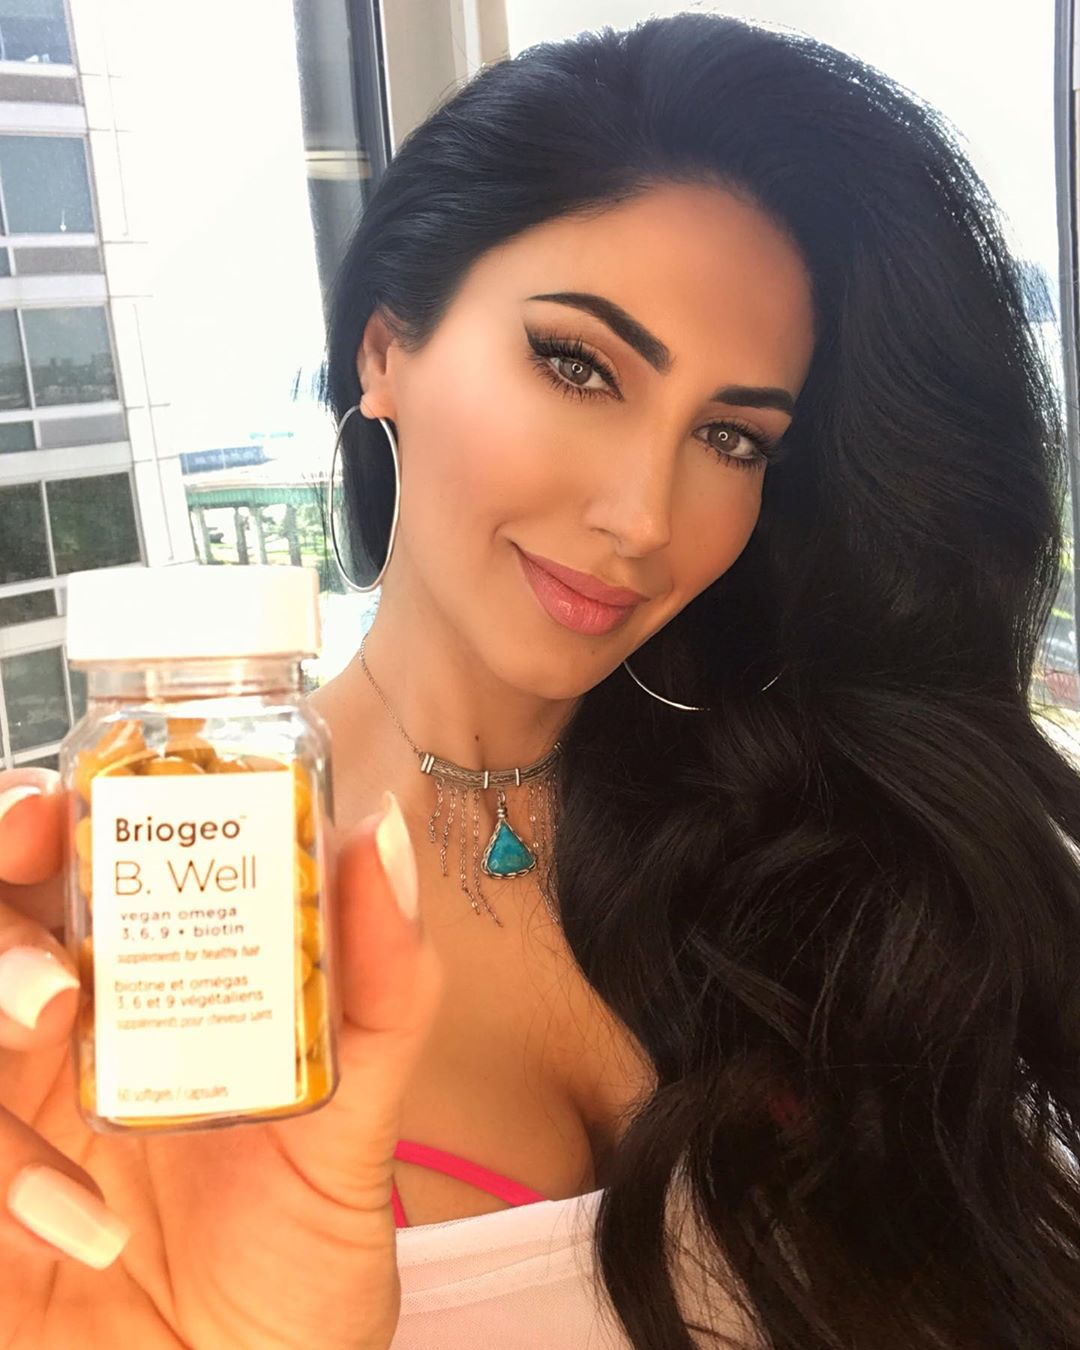 <p>I get tons of questions about how I keep my natural hair long, healthy, and shiny. I am a firm believer that great hair comes from within and the nutrients that support healthy hair. That's why I'm so excited about this #sponsor The B. Well Vegan Omega 3, 6, 9 + Biotin is a nutritionist-approved vegan-friendly hair supplement from Briogeo the Key Ingredients are: Algae Derived Omega-3 Complex, Ahiflower® Oil, Biotin.</p>